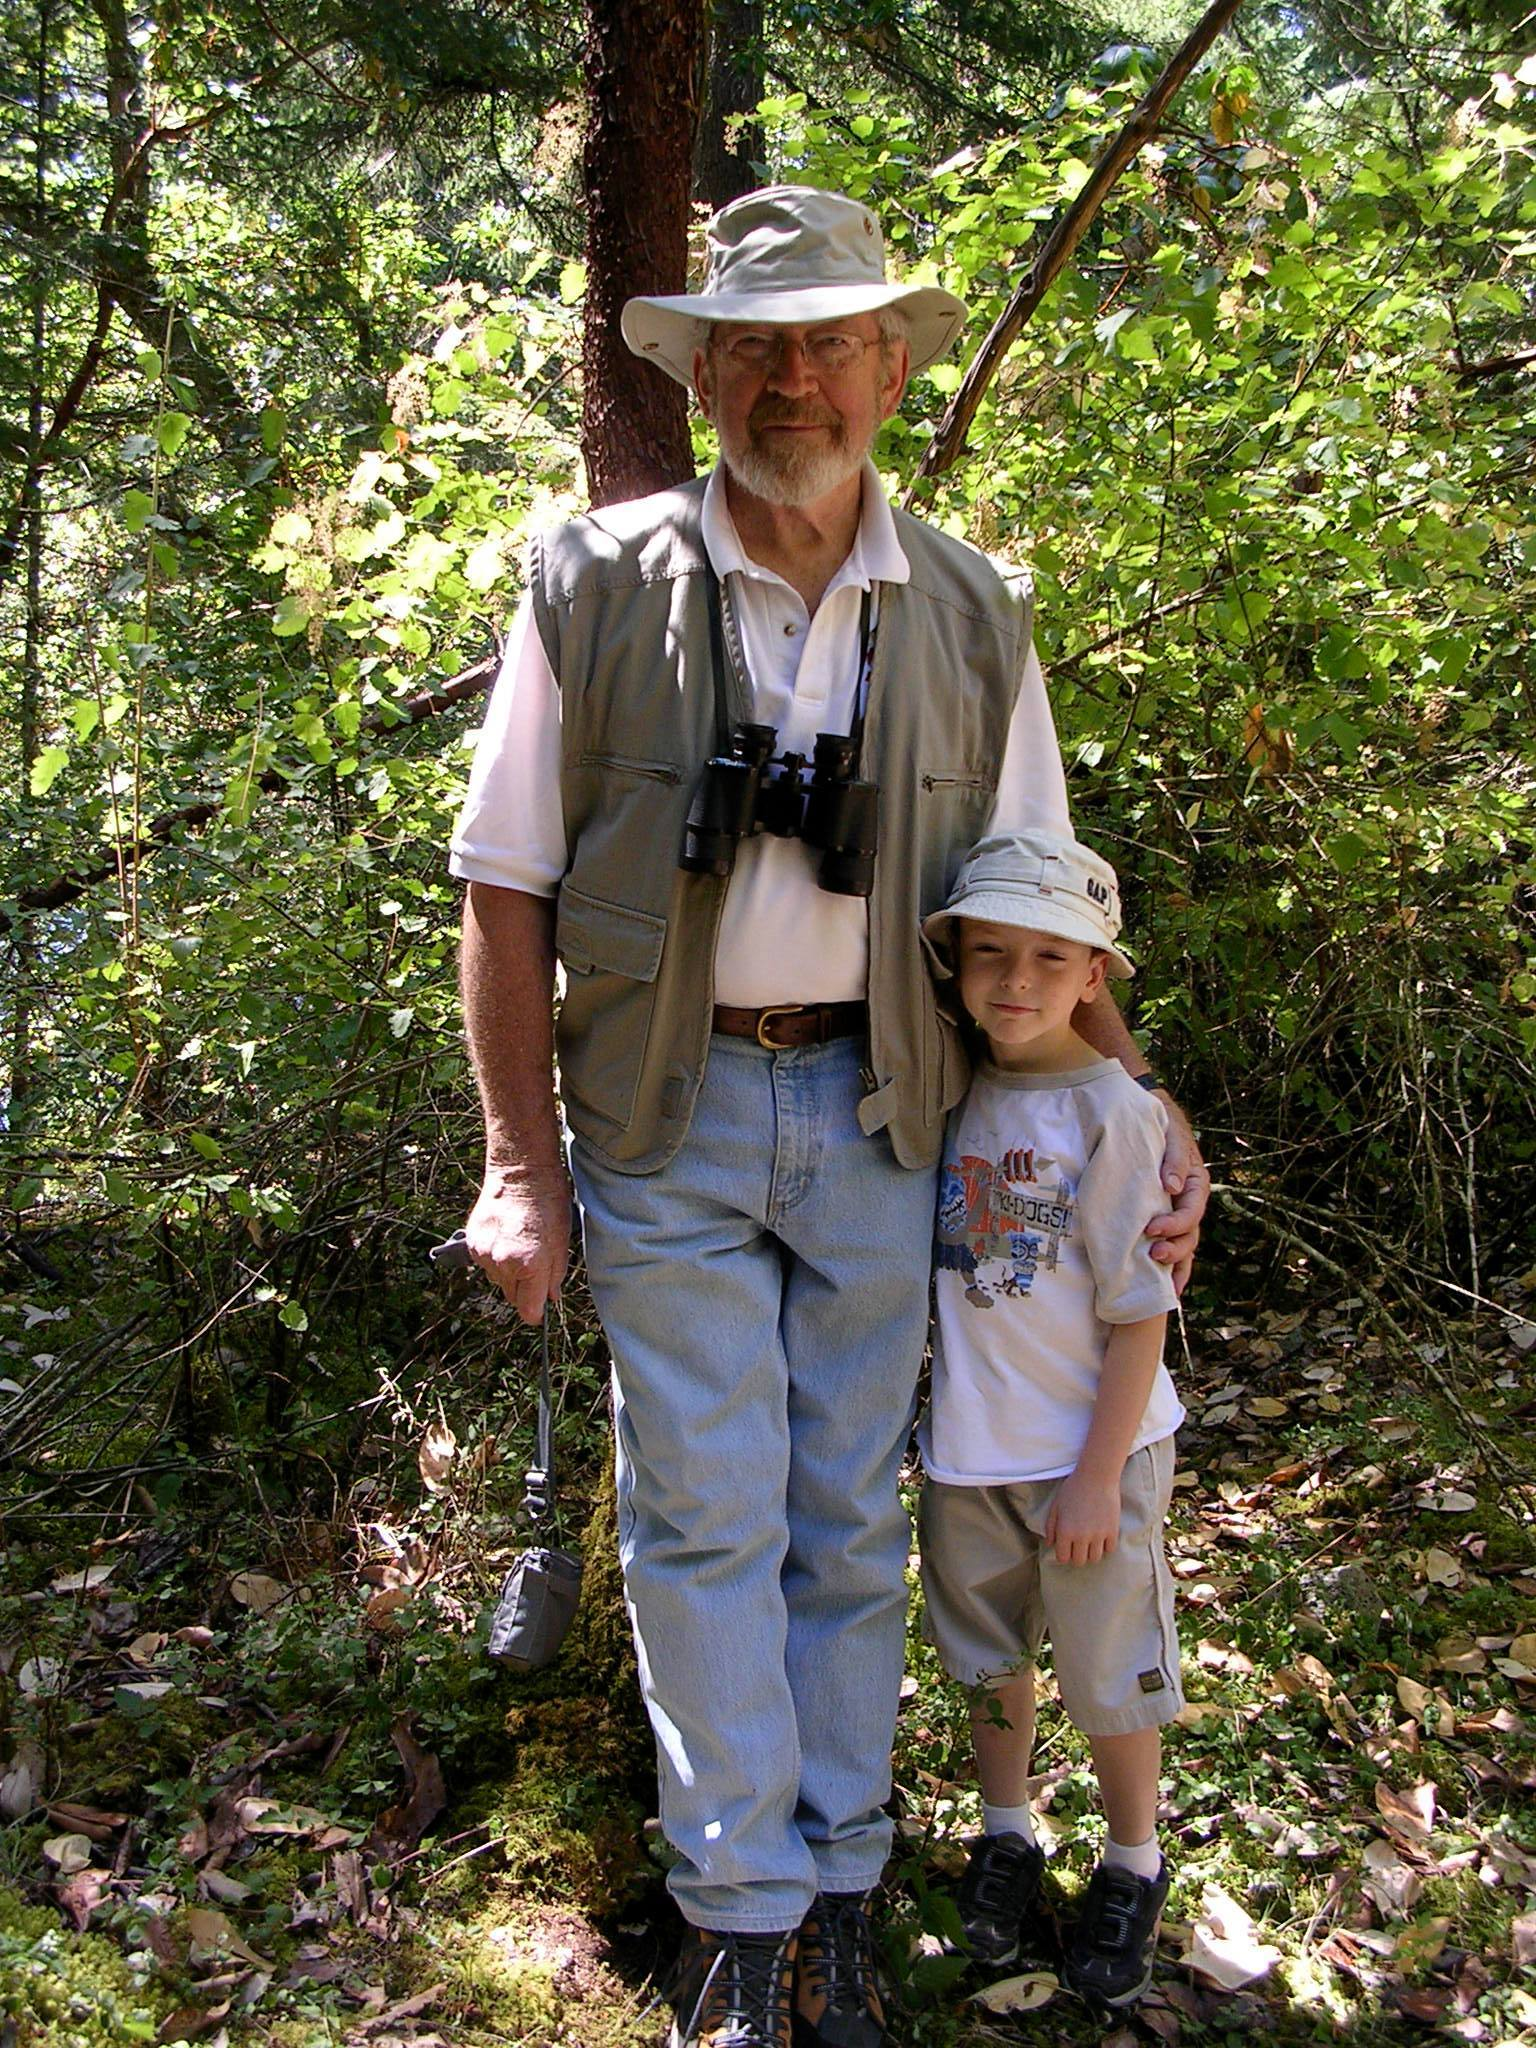 Probably one of my favorite pictures. Dad with The Elder Spawn, I think around 2002 ish.